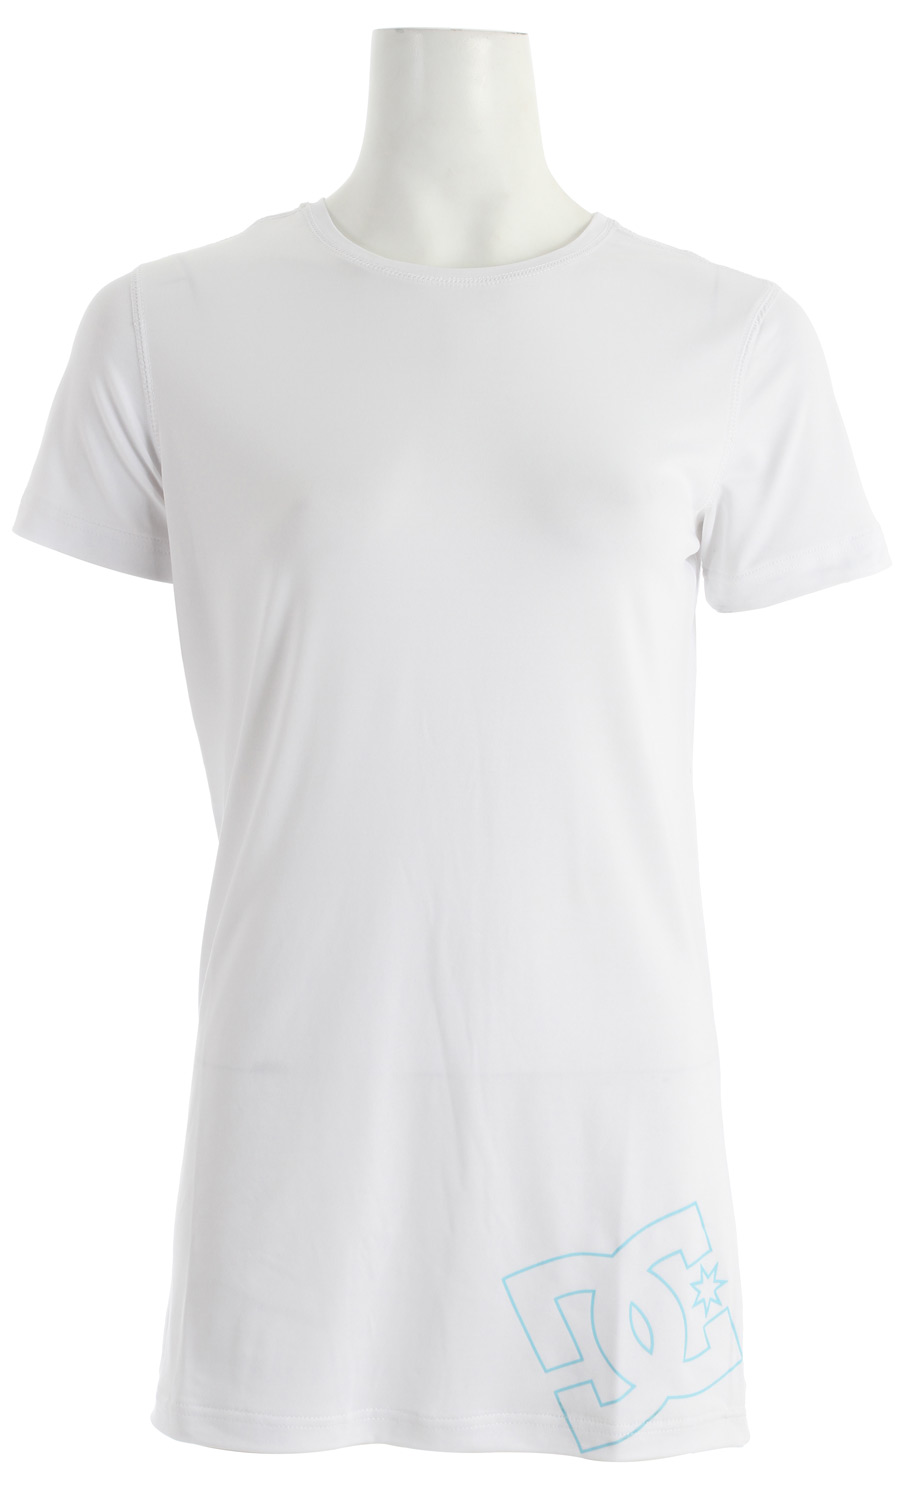 Skateboard DC Valdres Baselayer White - $11.95